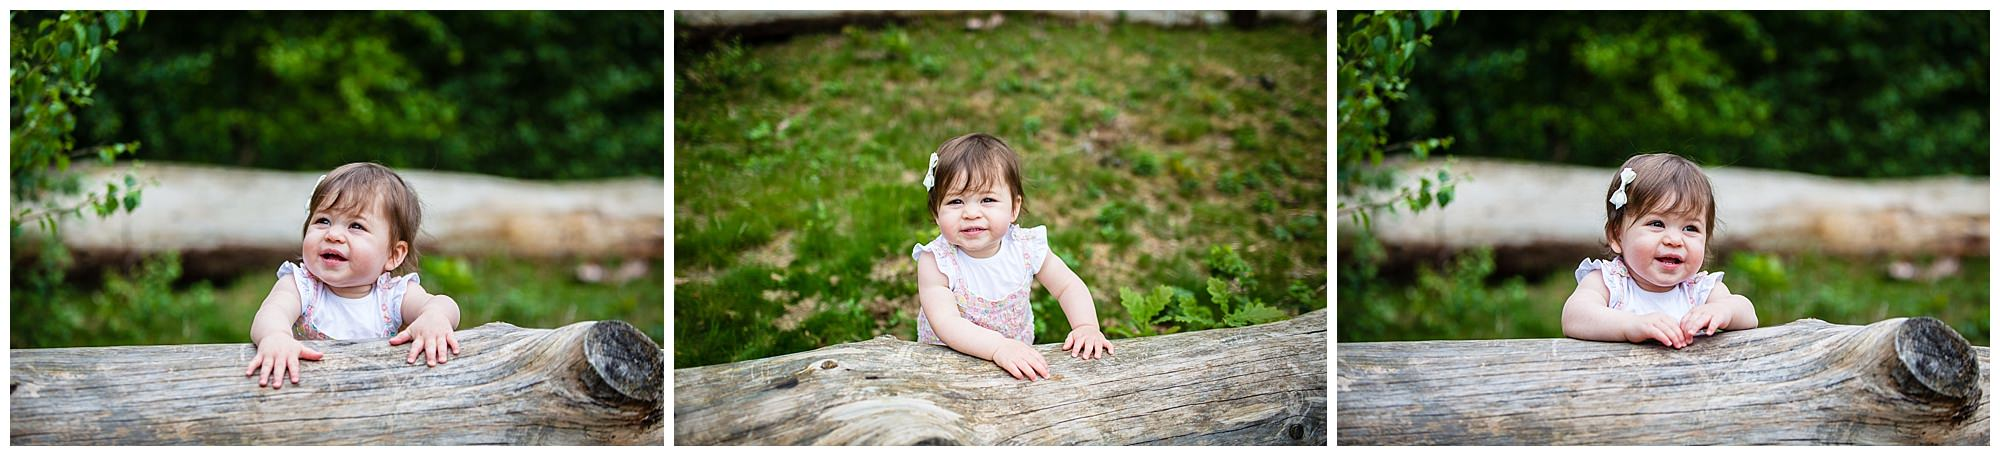 baby girl looking at the camera whioe supporting herself on a log